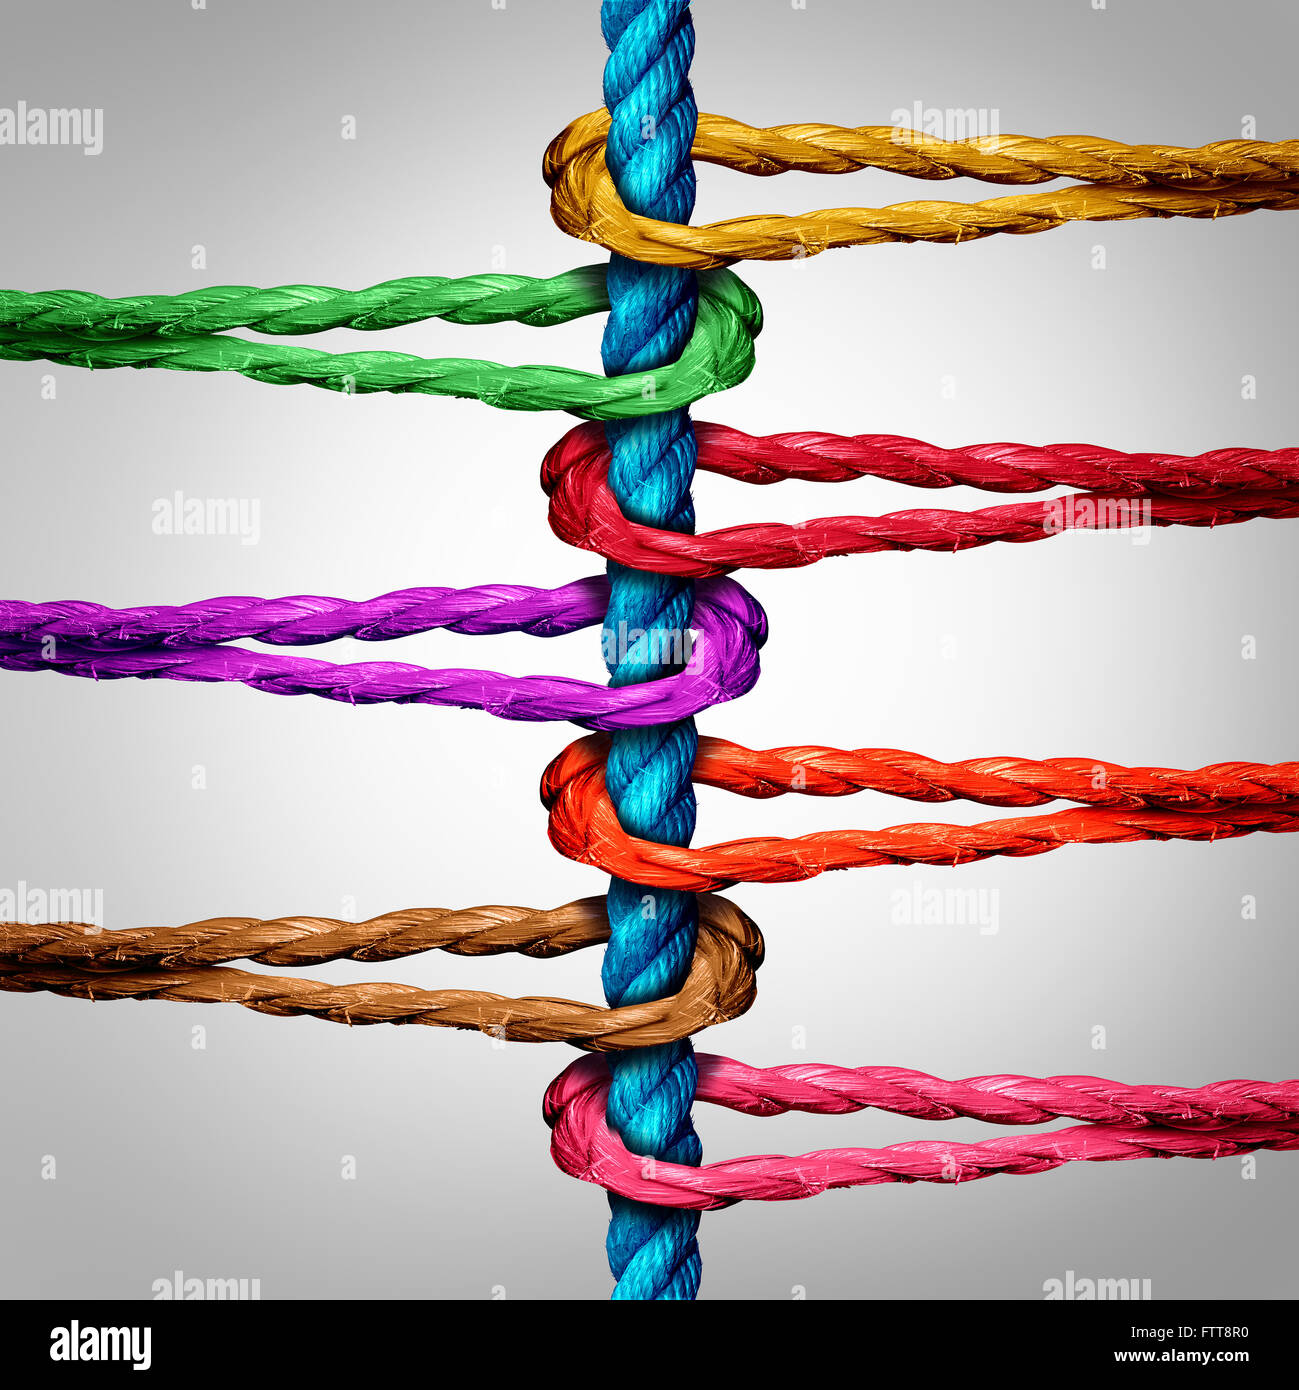 Central connection business concept as a group of diverse ropes connected to a central rope as a network metaphor - Stock Image